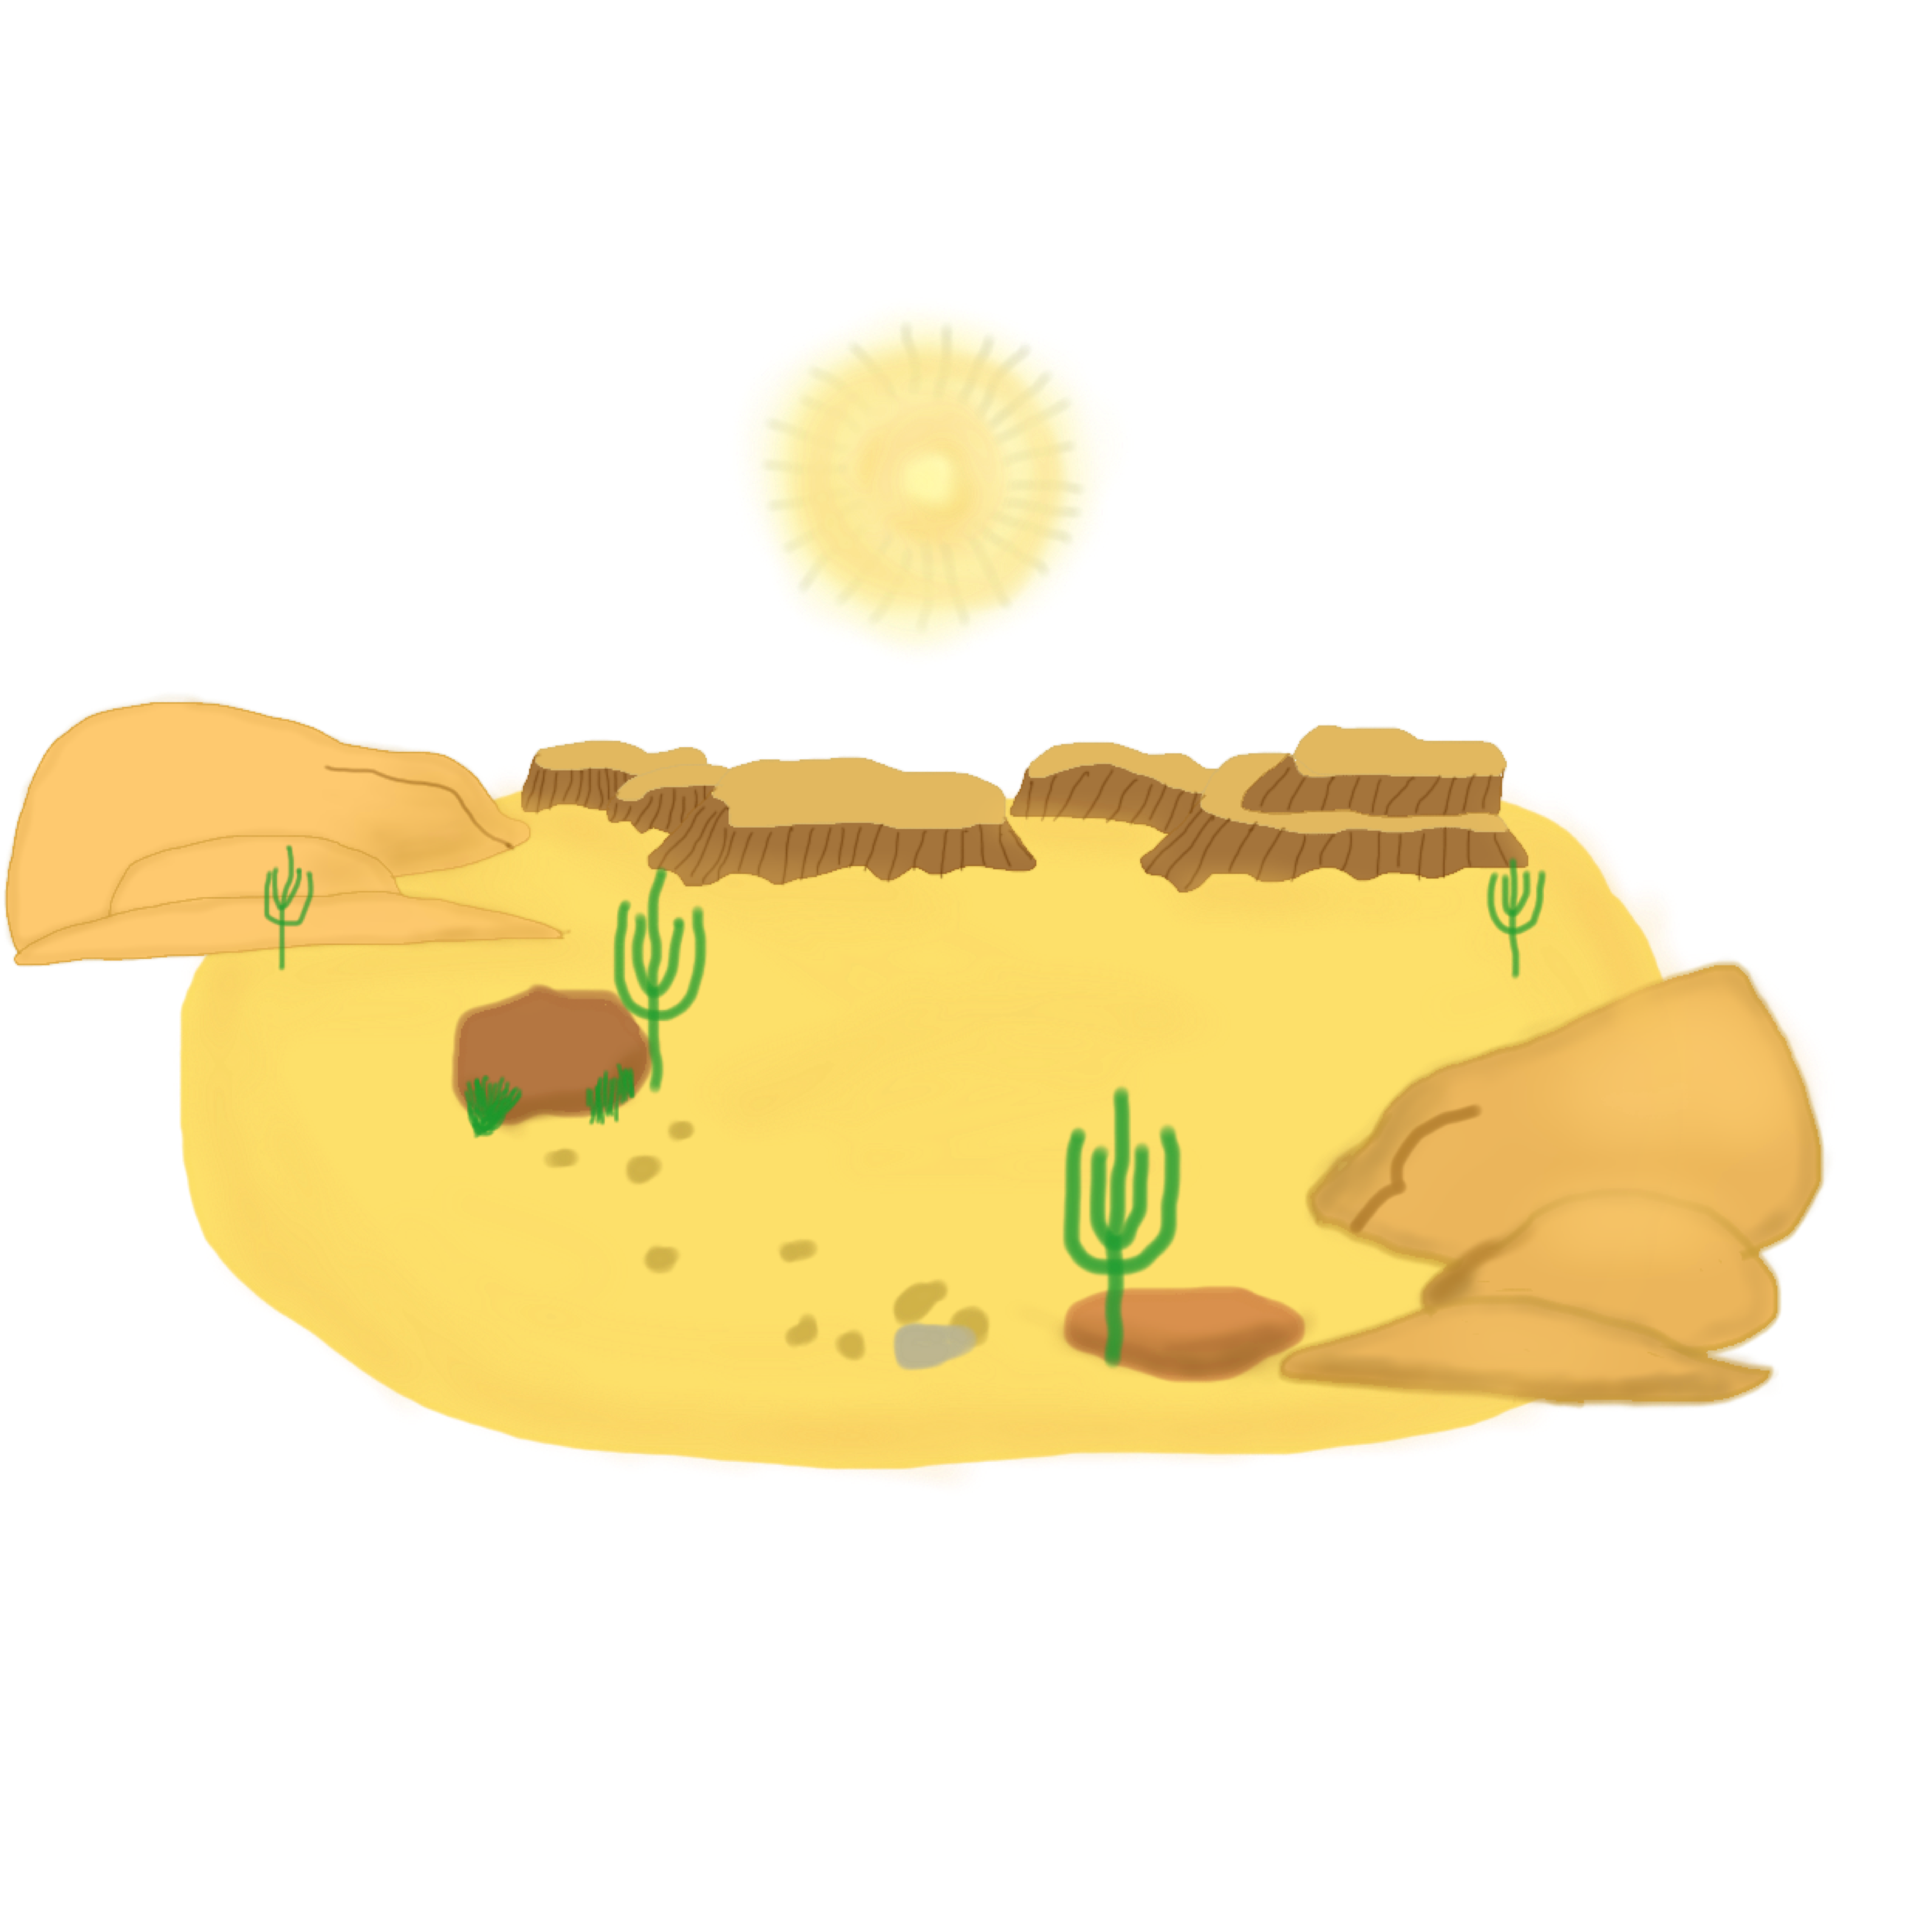 Desert png clipart. Collection of high